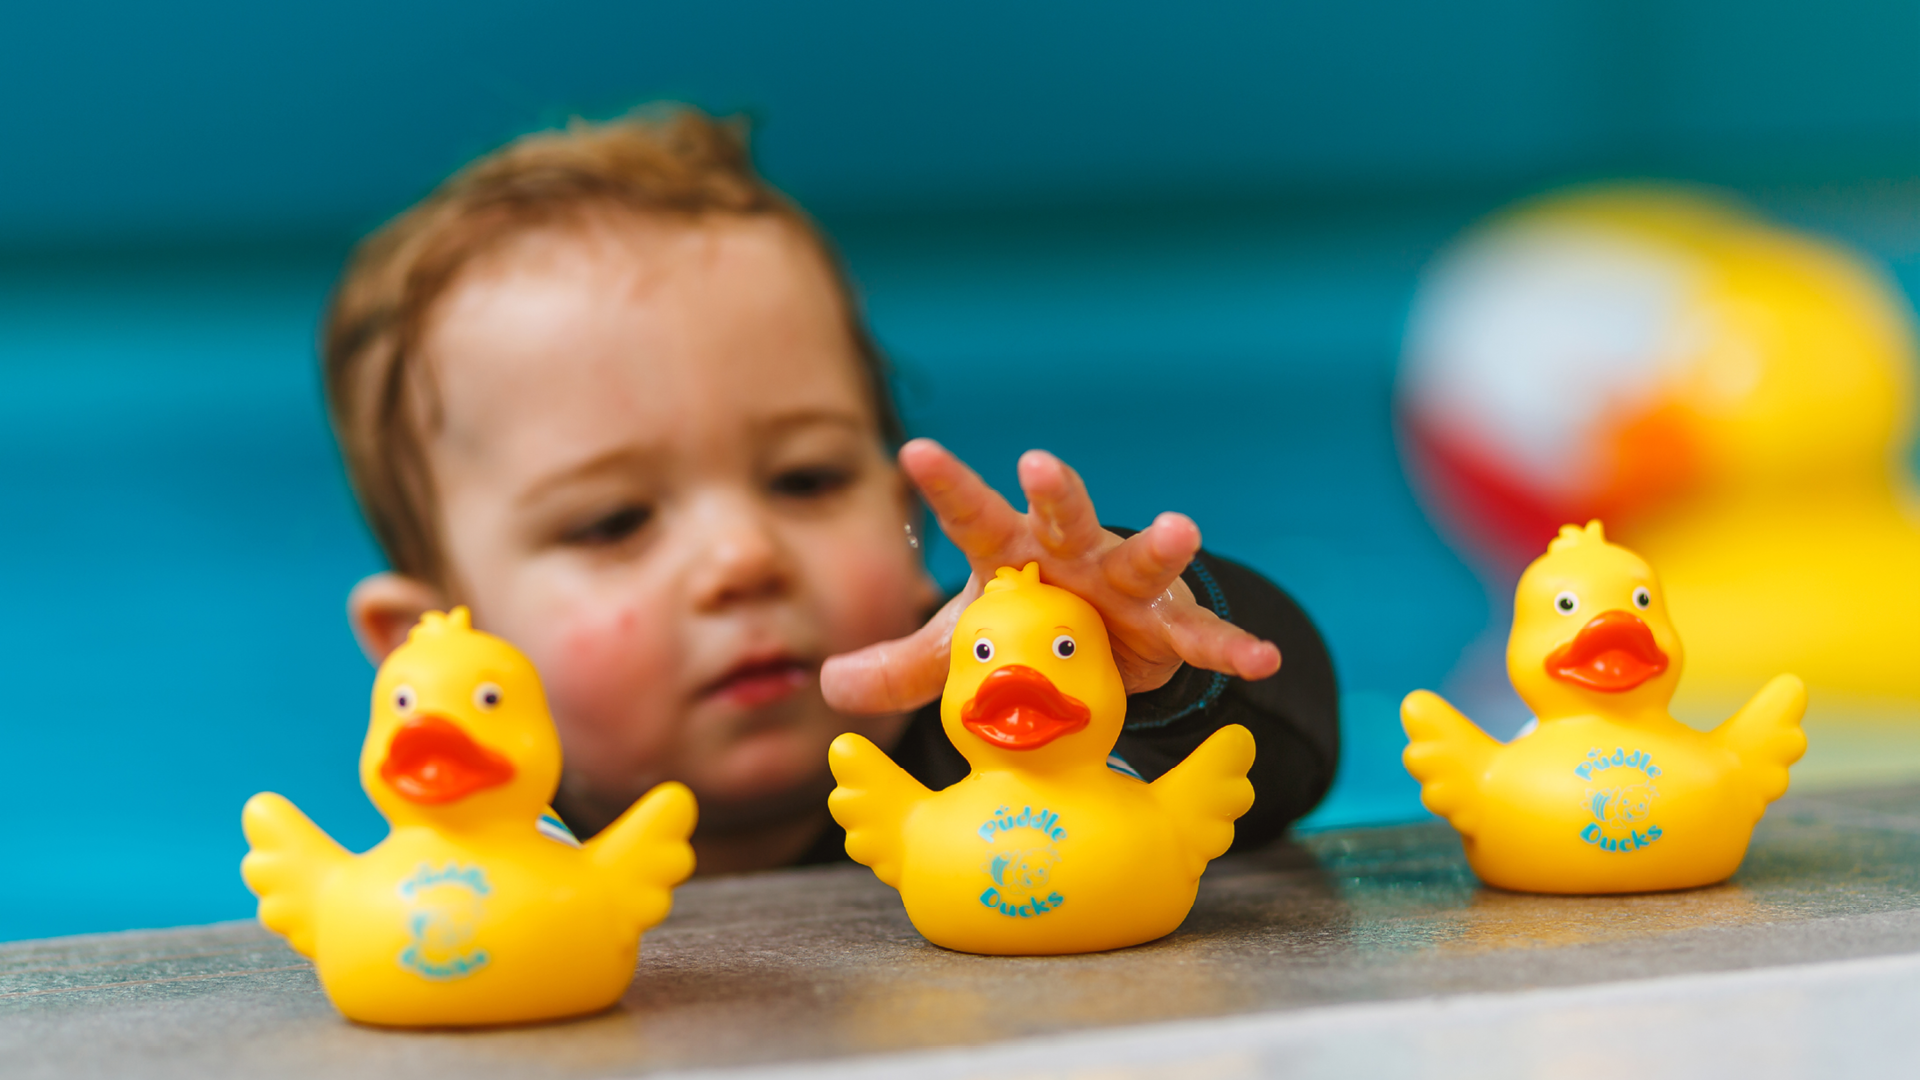 Puddle Ducks provide expert comment on radio